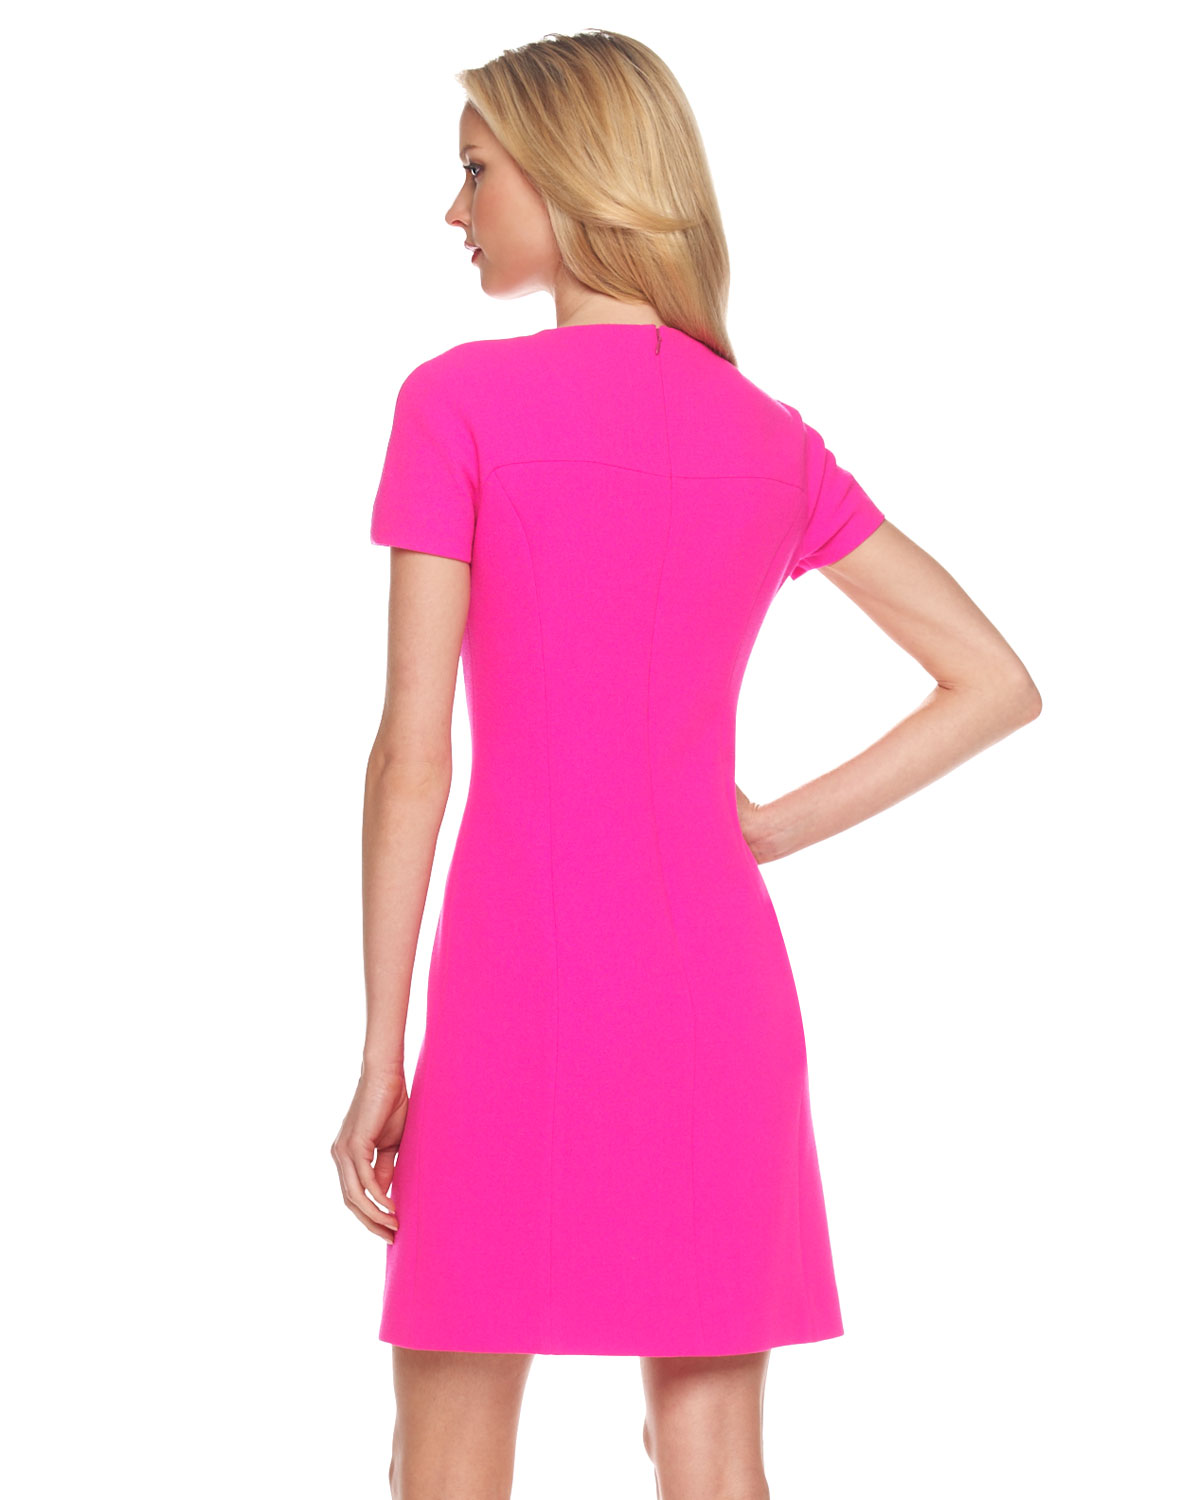 Lyst Michael Kors Stretch Boucle Dress Neon In Pink